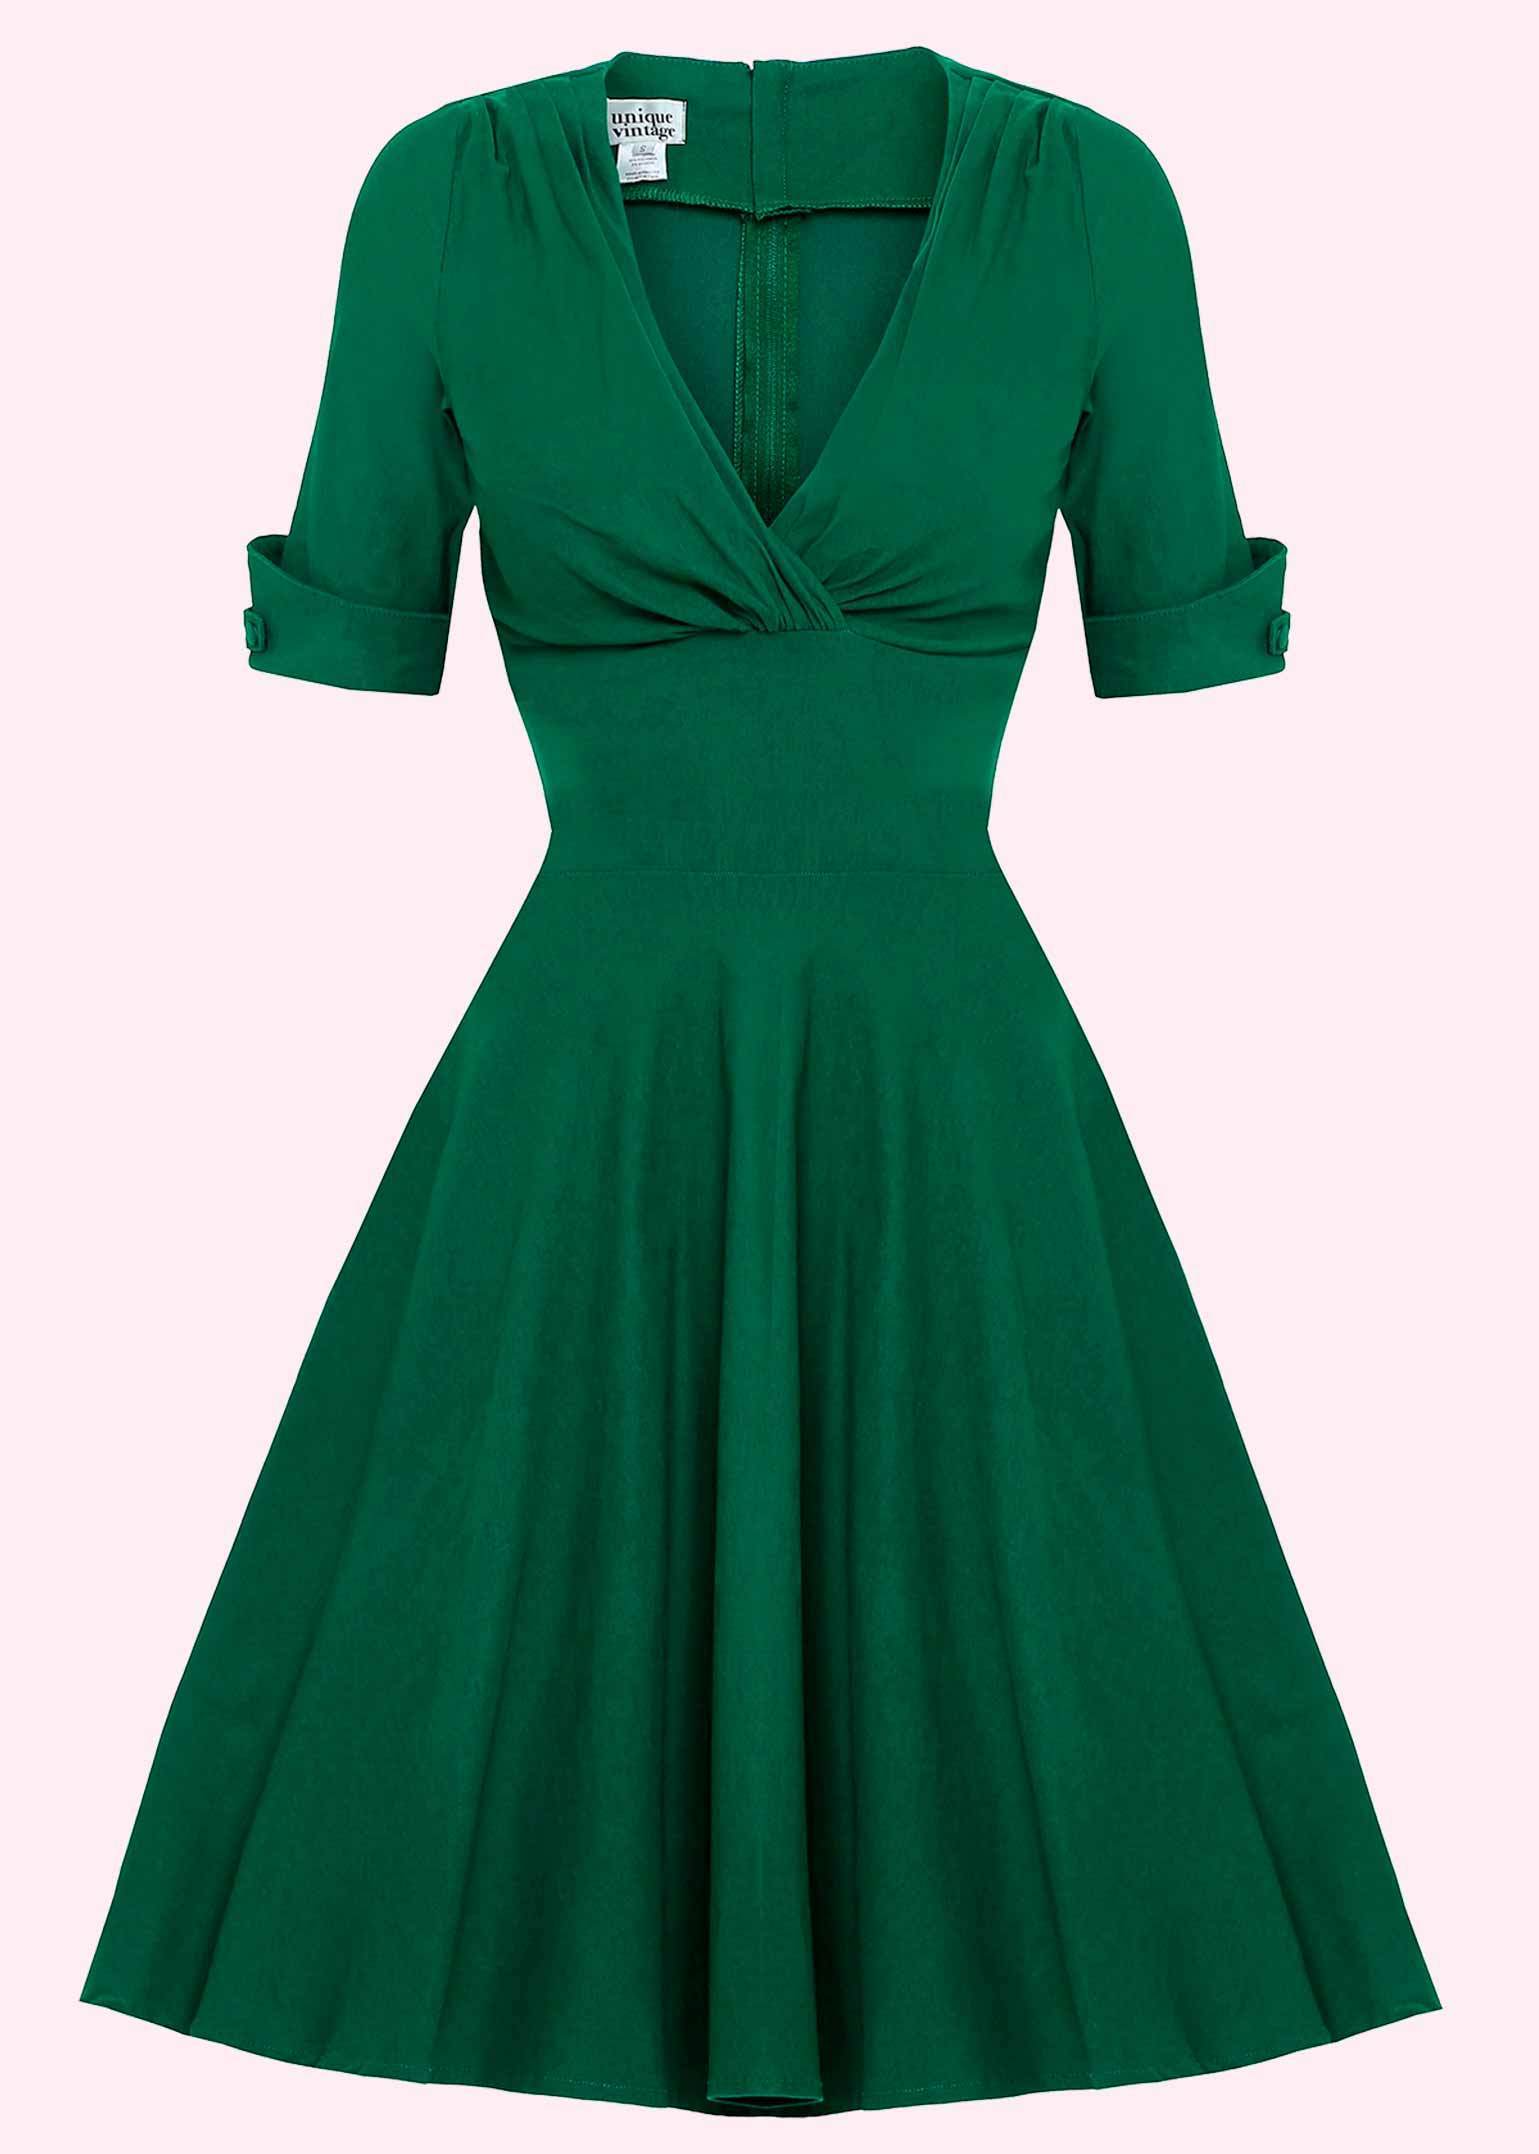 Green swing dress from Unique Vintage